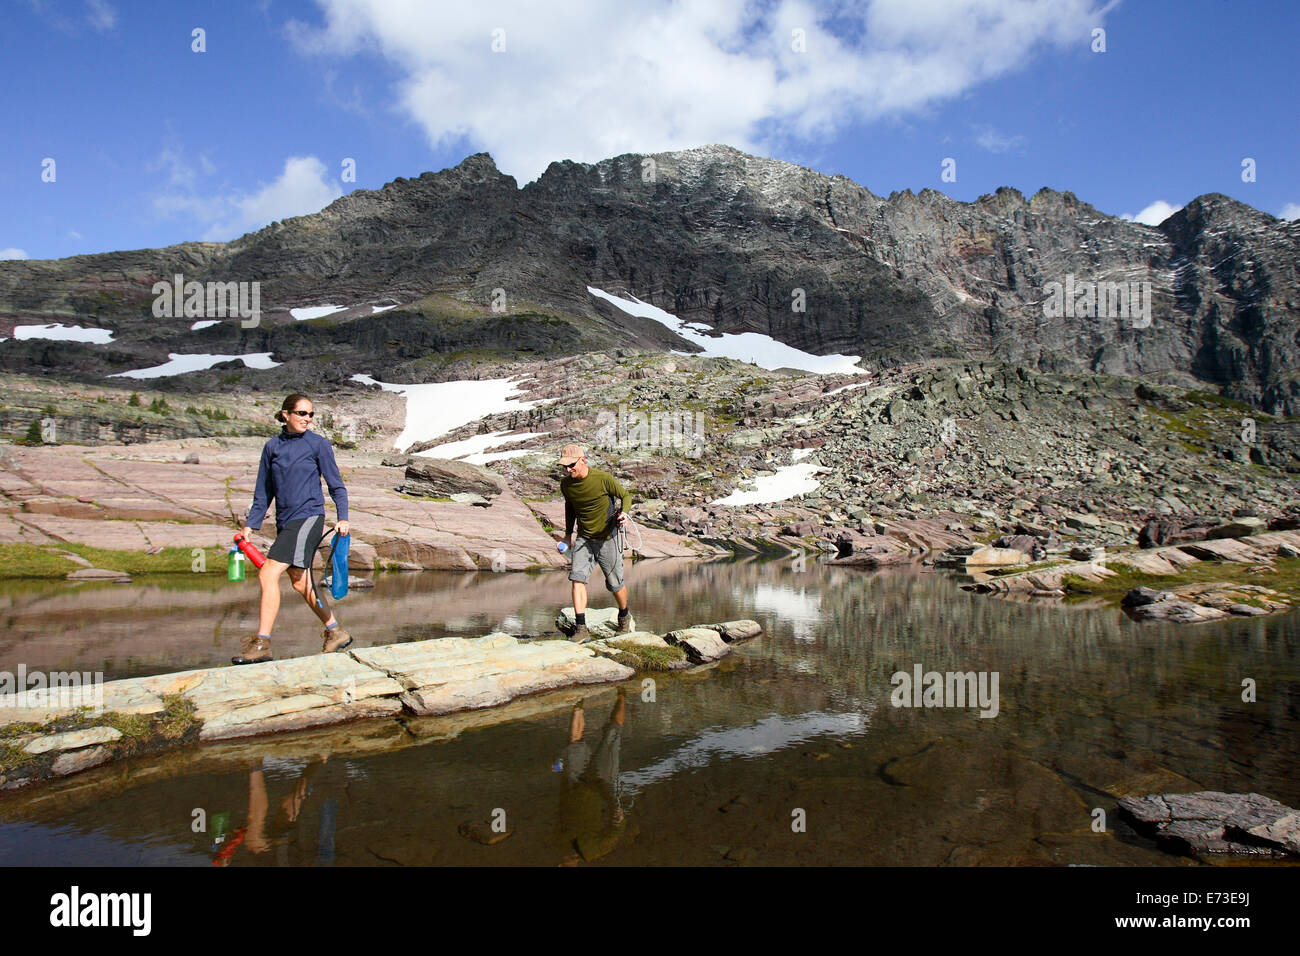 A man and woman filter water in Glacier National Park, Montana. - Stock Image